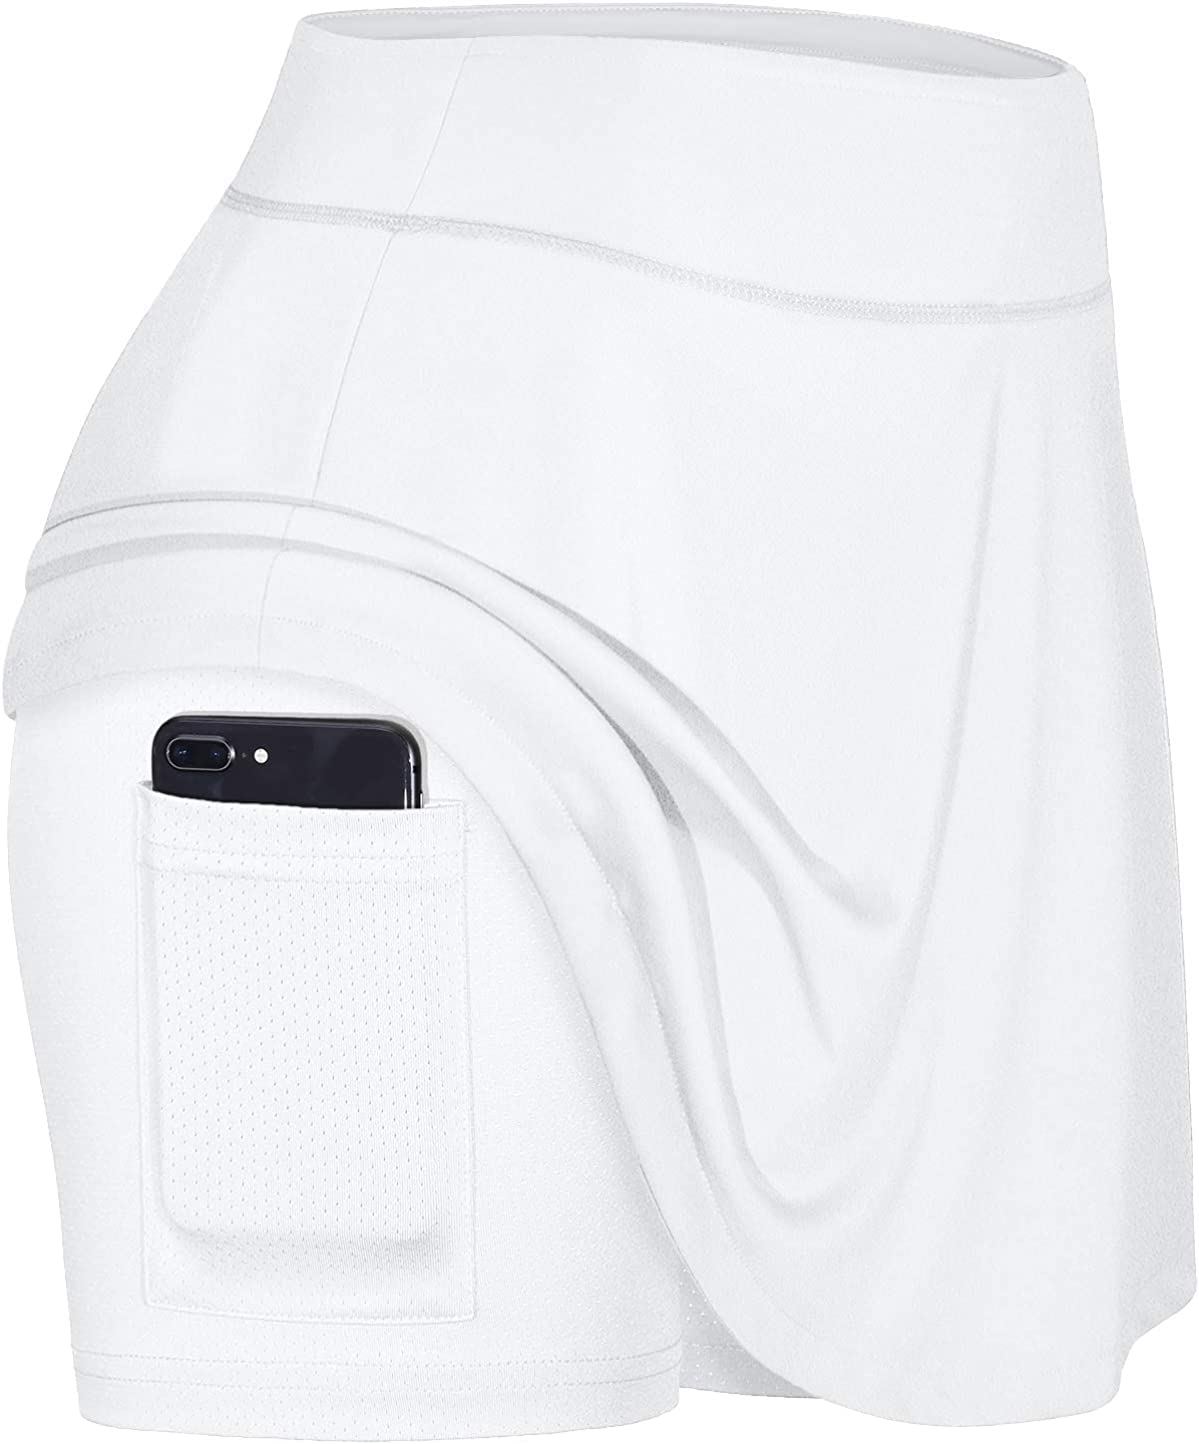 Blevonh Women's Tennis Skort Active with San Diego Mall Skirts Pleated f Pocket OFFicial shop